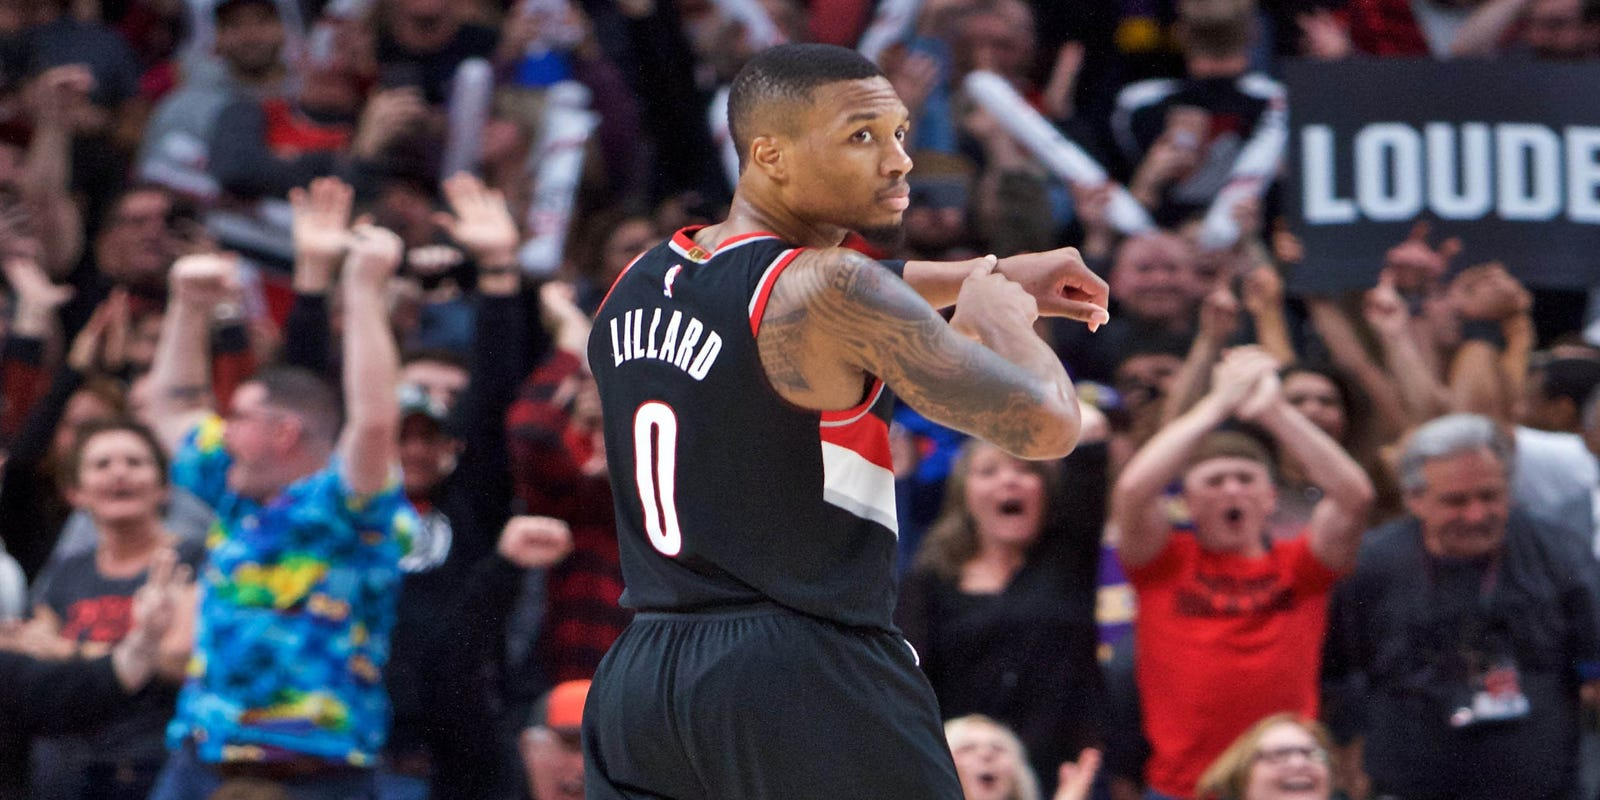 a370ef0b607 Damian Lillard's late 3 lifts Blazers over Lakers again